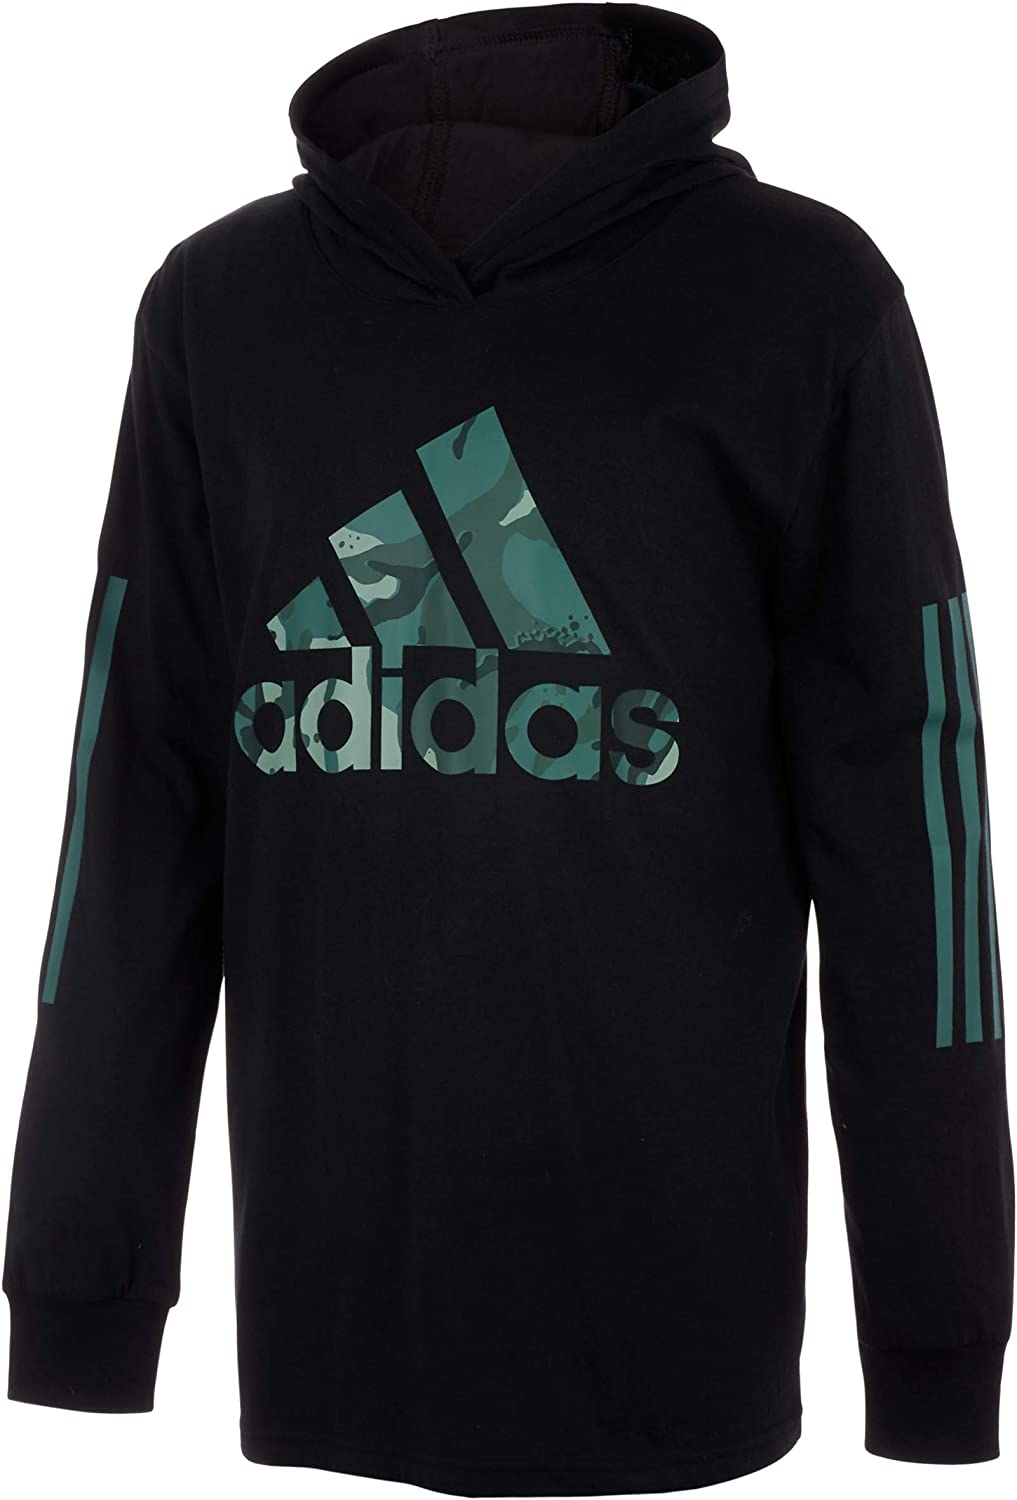 adidas Boys' Long Sleeve Cotton Jersey Hooded Max 48% OFF Daily bargain sale T-Shirt Tee